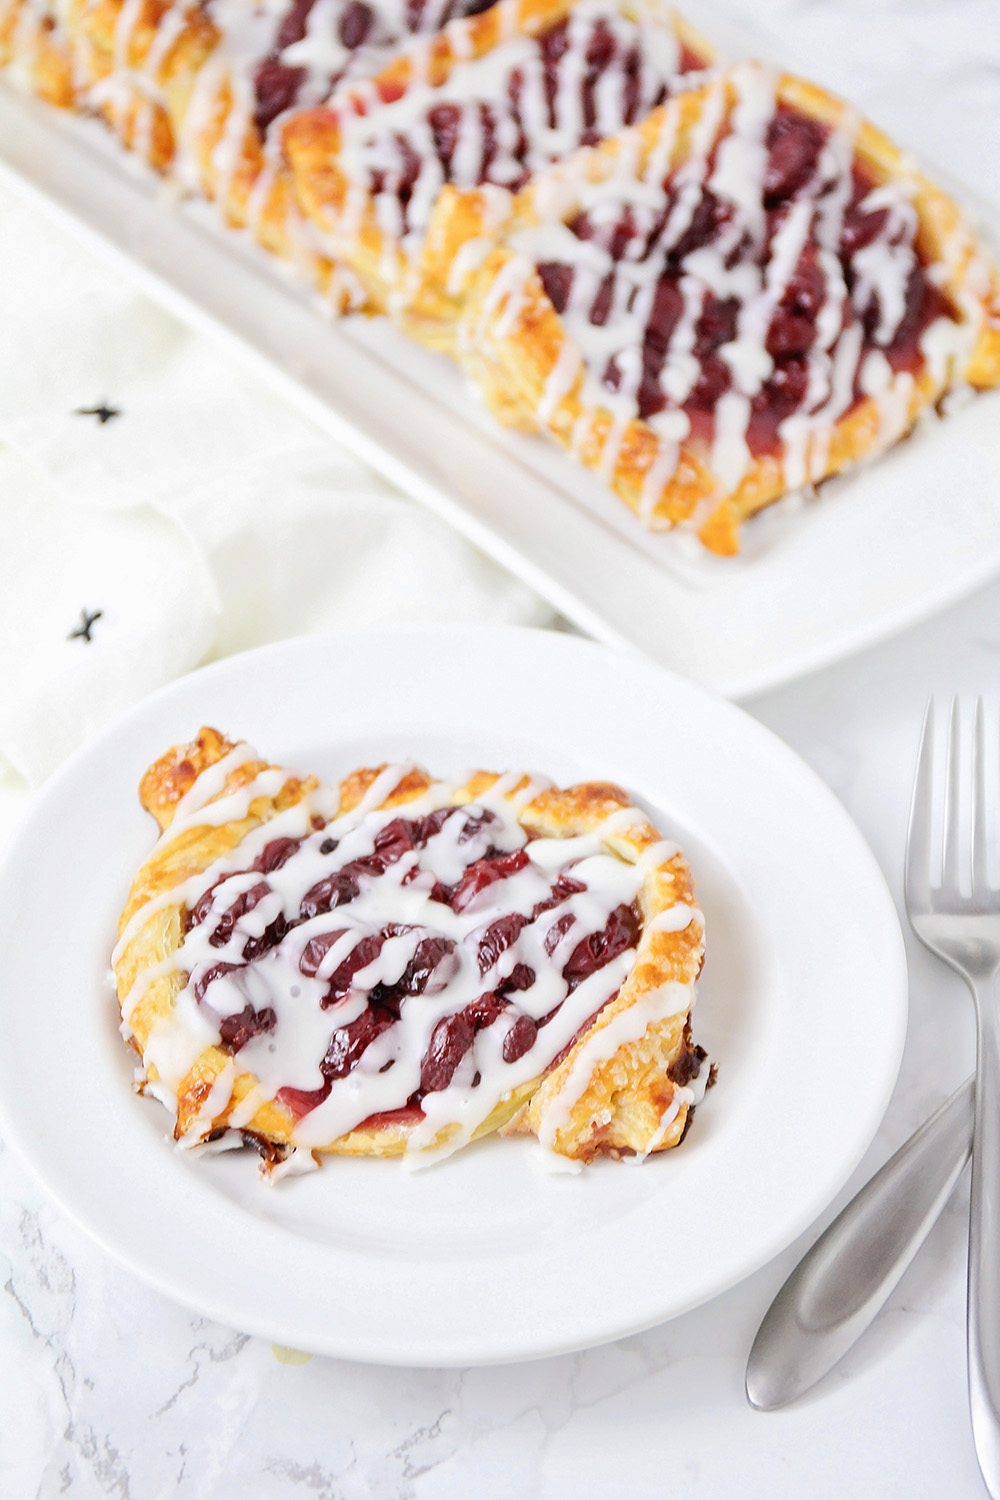 These cherry pie pastries are delicious and easy to make! They're perfect for breakfast or dessert!